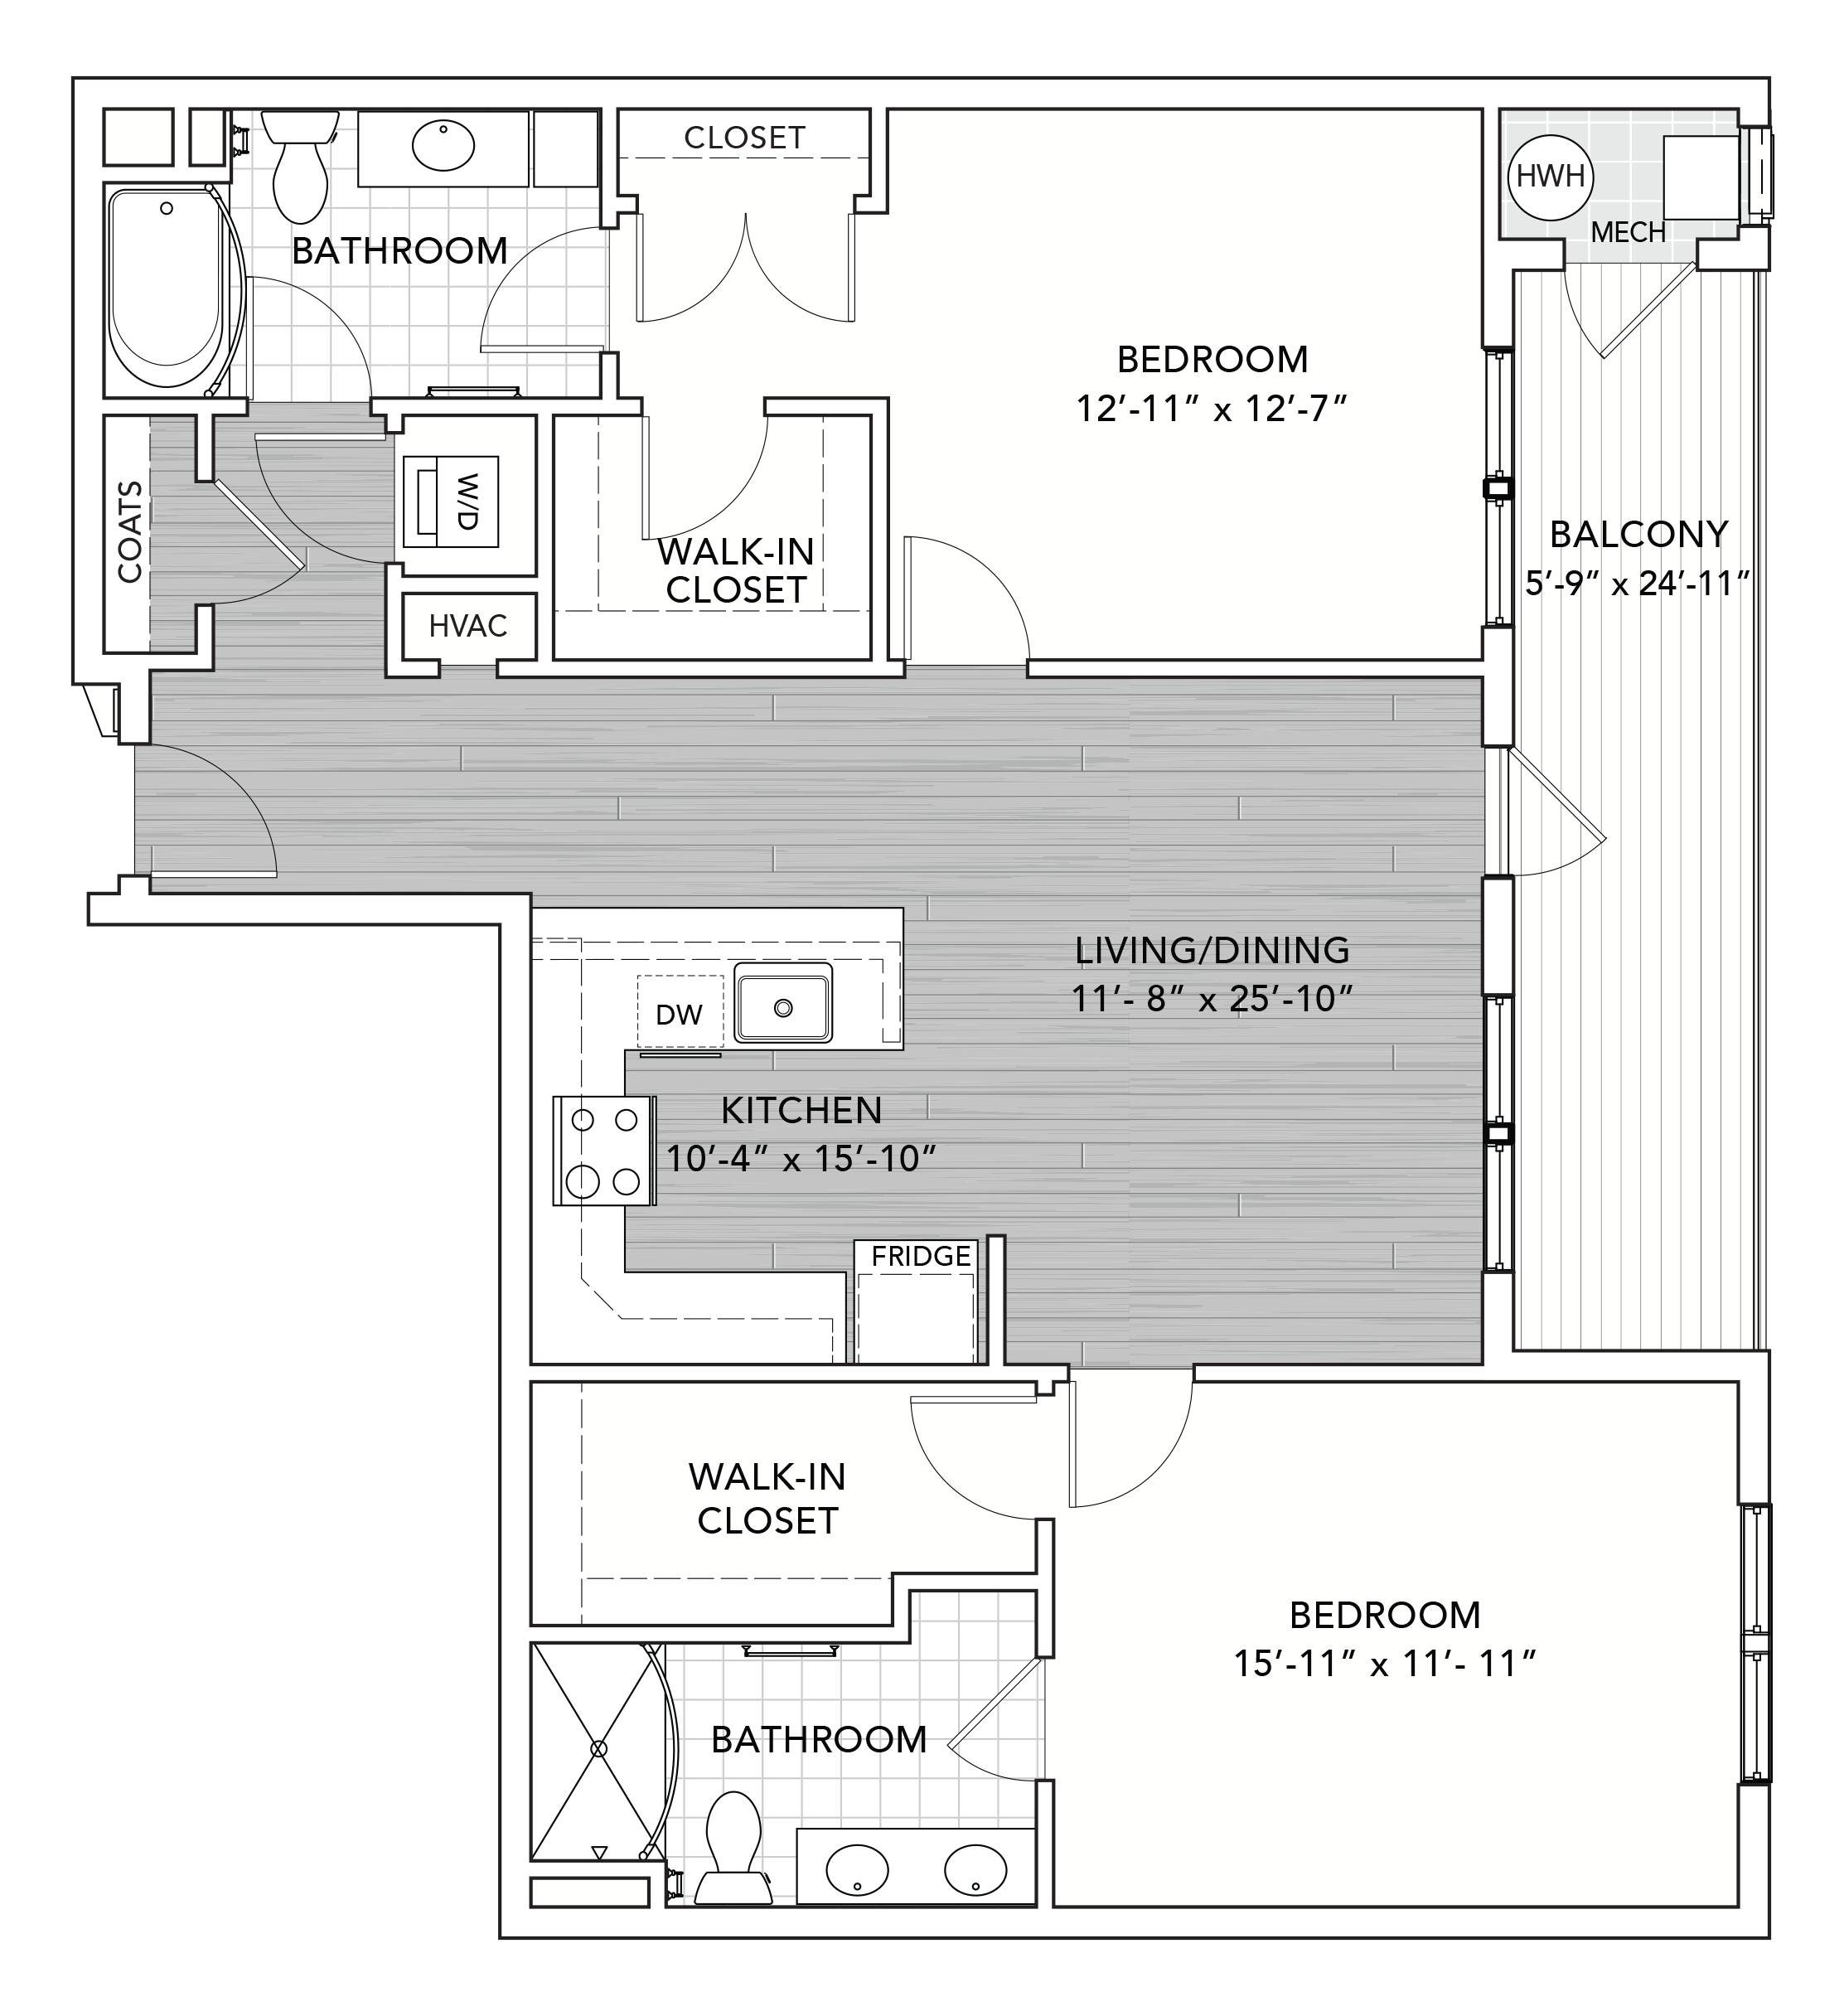 P0655013 parksquare b9 1269 2 floorplan